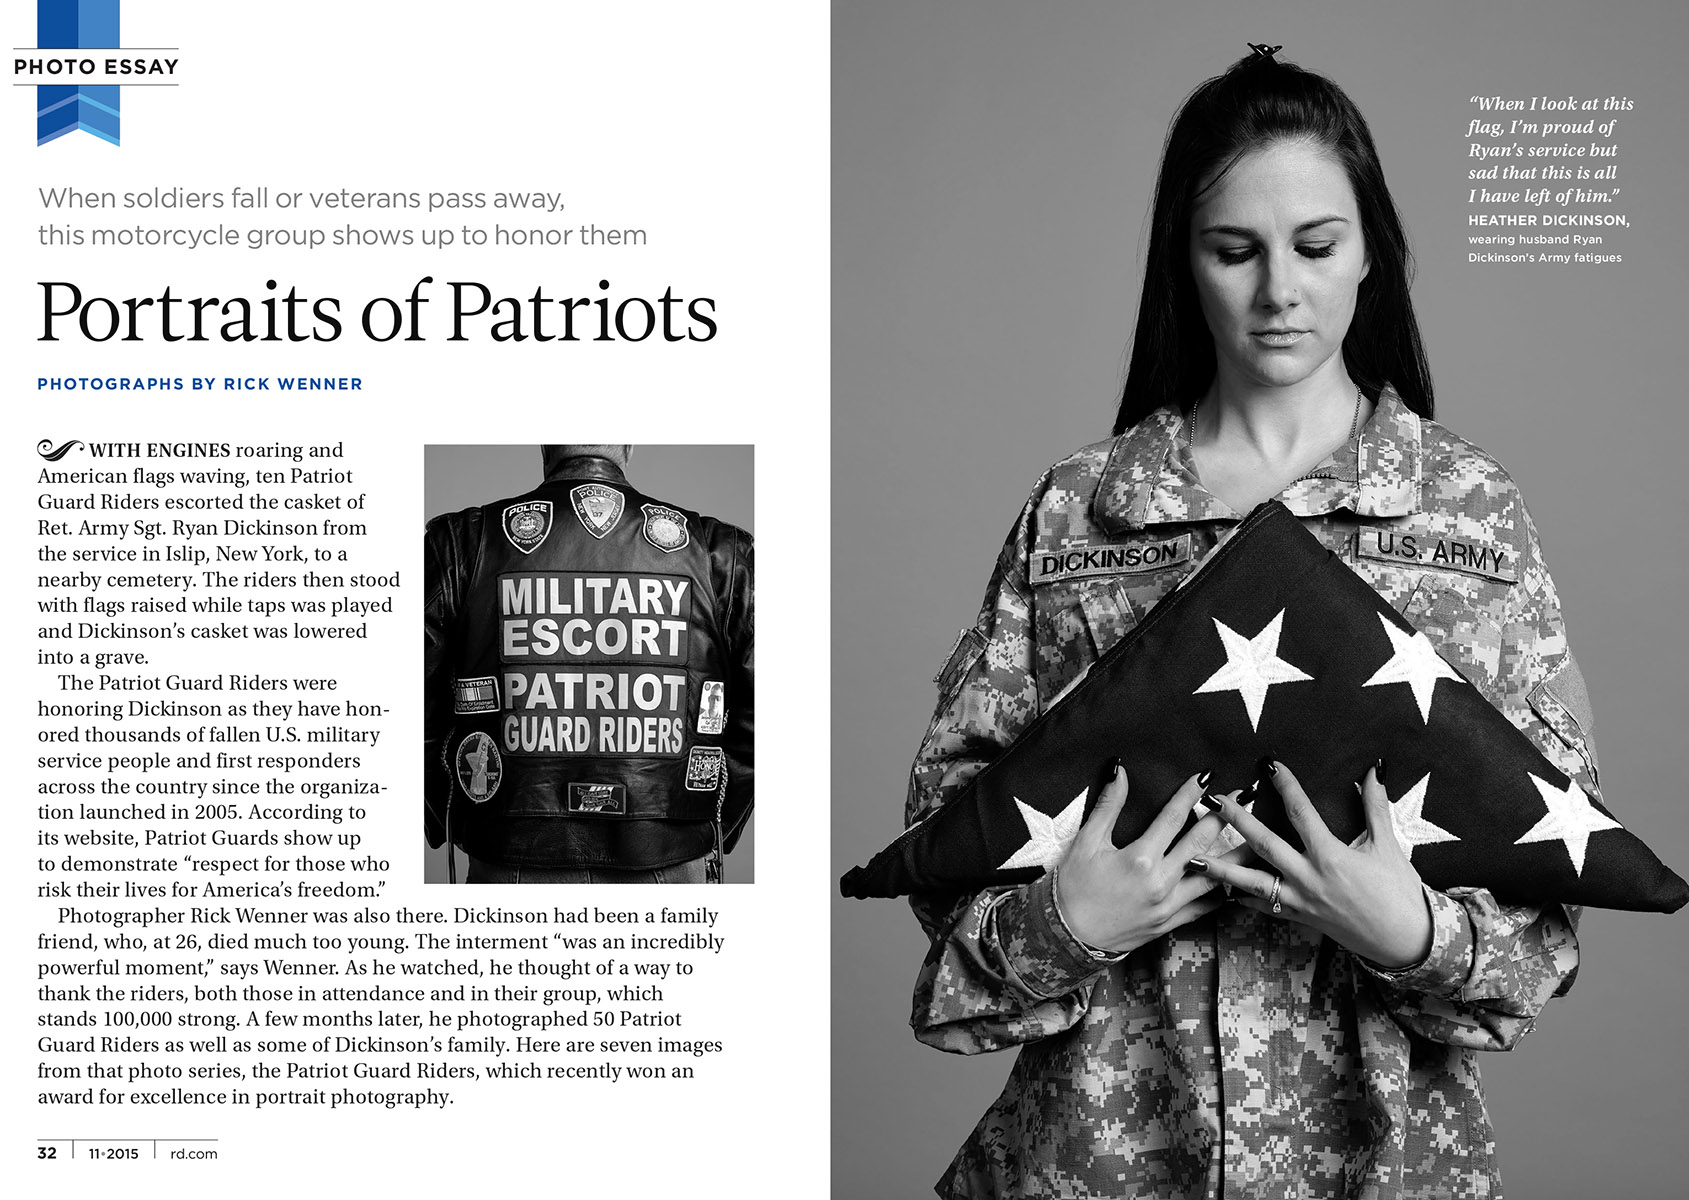 Readers Digest - The Patriot Guard Riders